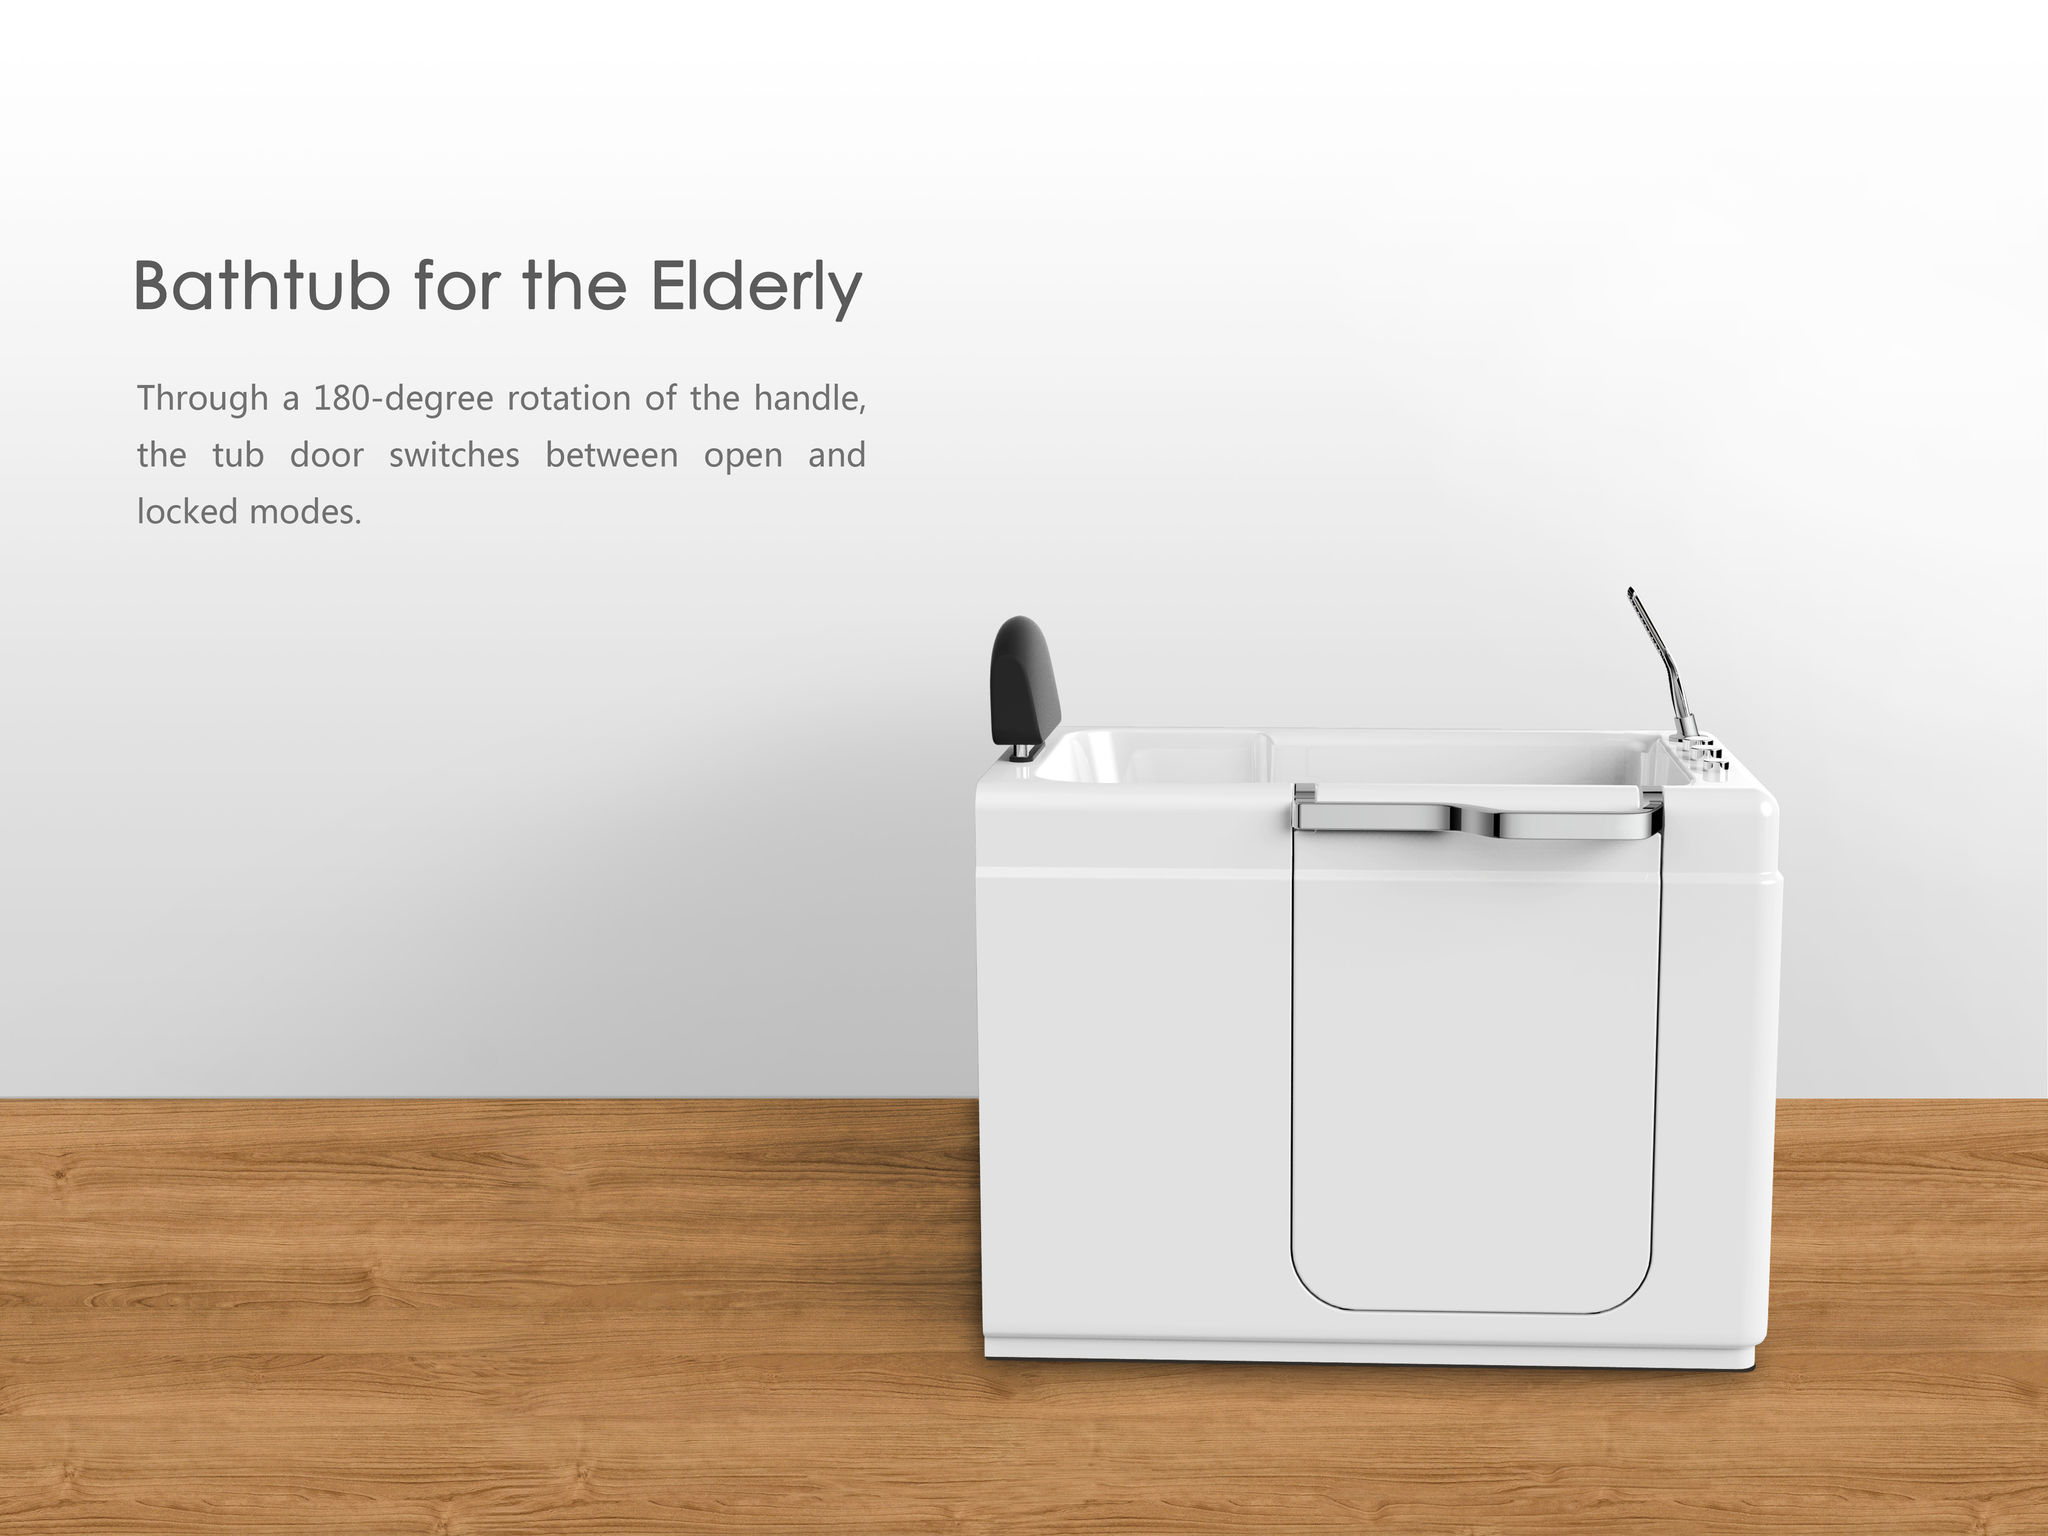 Bathtub for the Elderly - Entry - iF WORLD DESIGN GUIDE